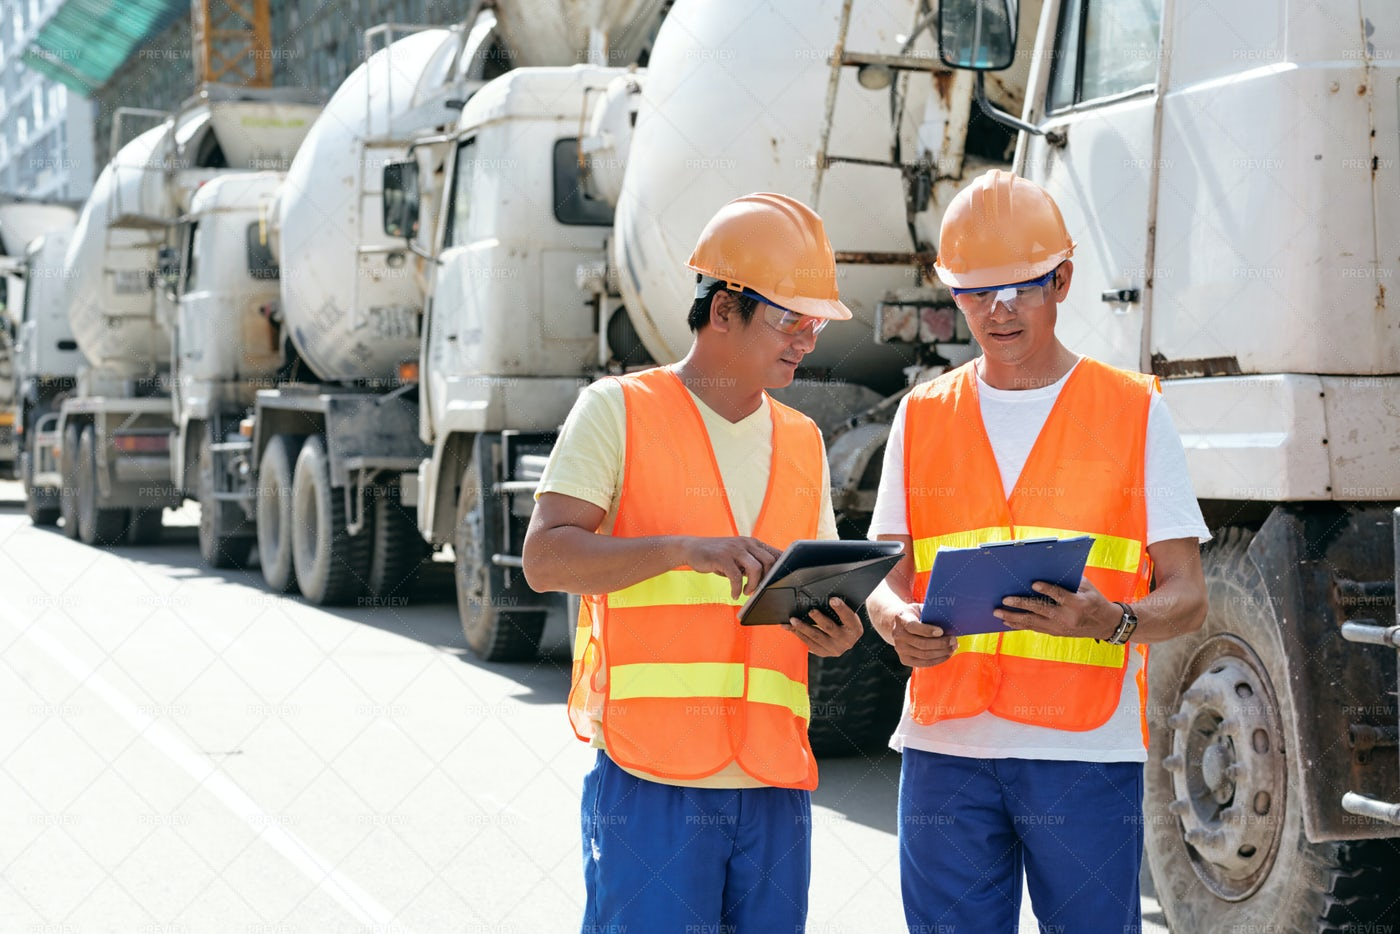 Engineers Discussing Work: Stock Photos